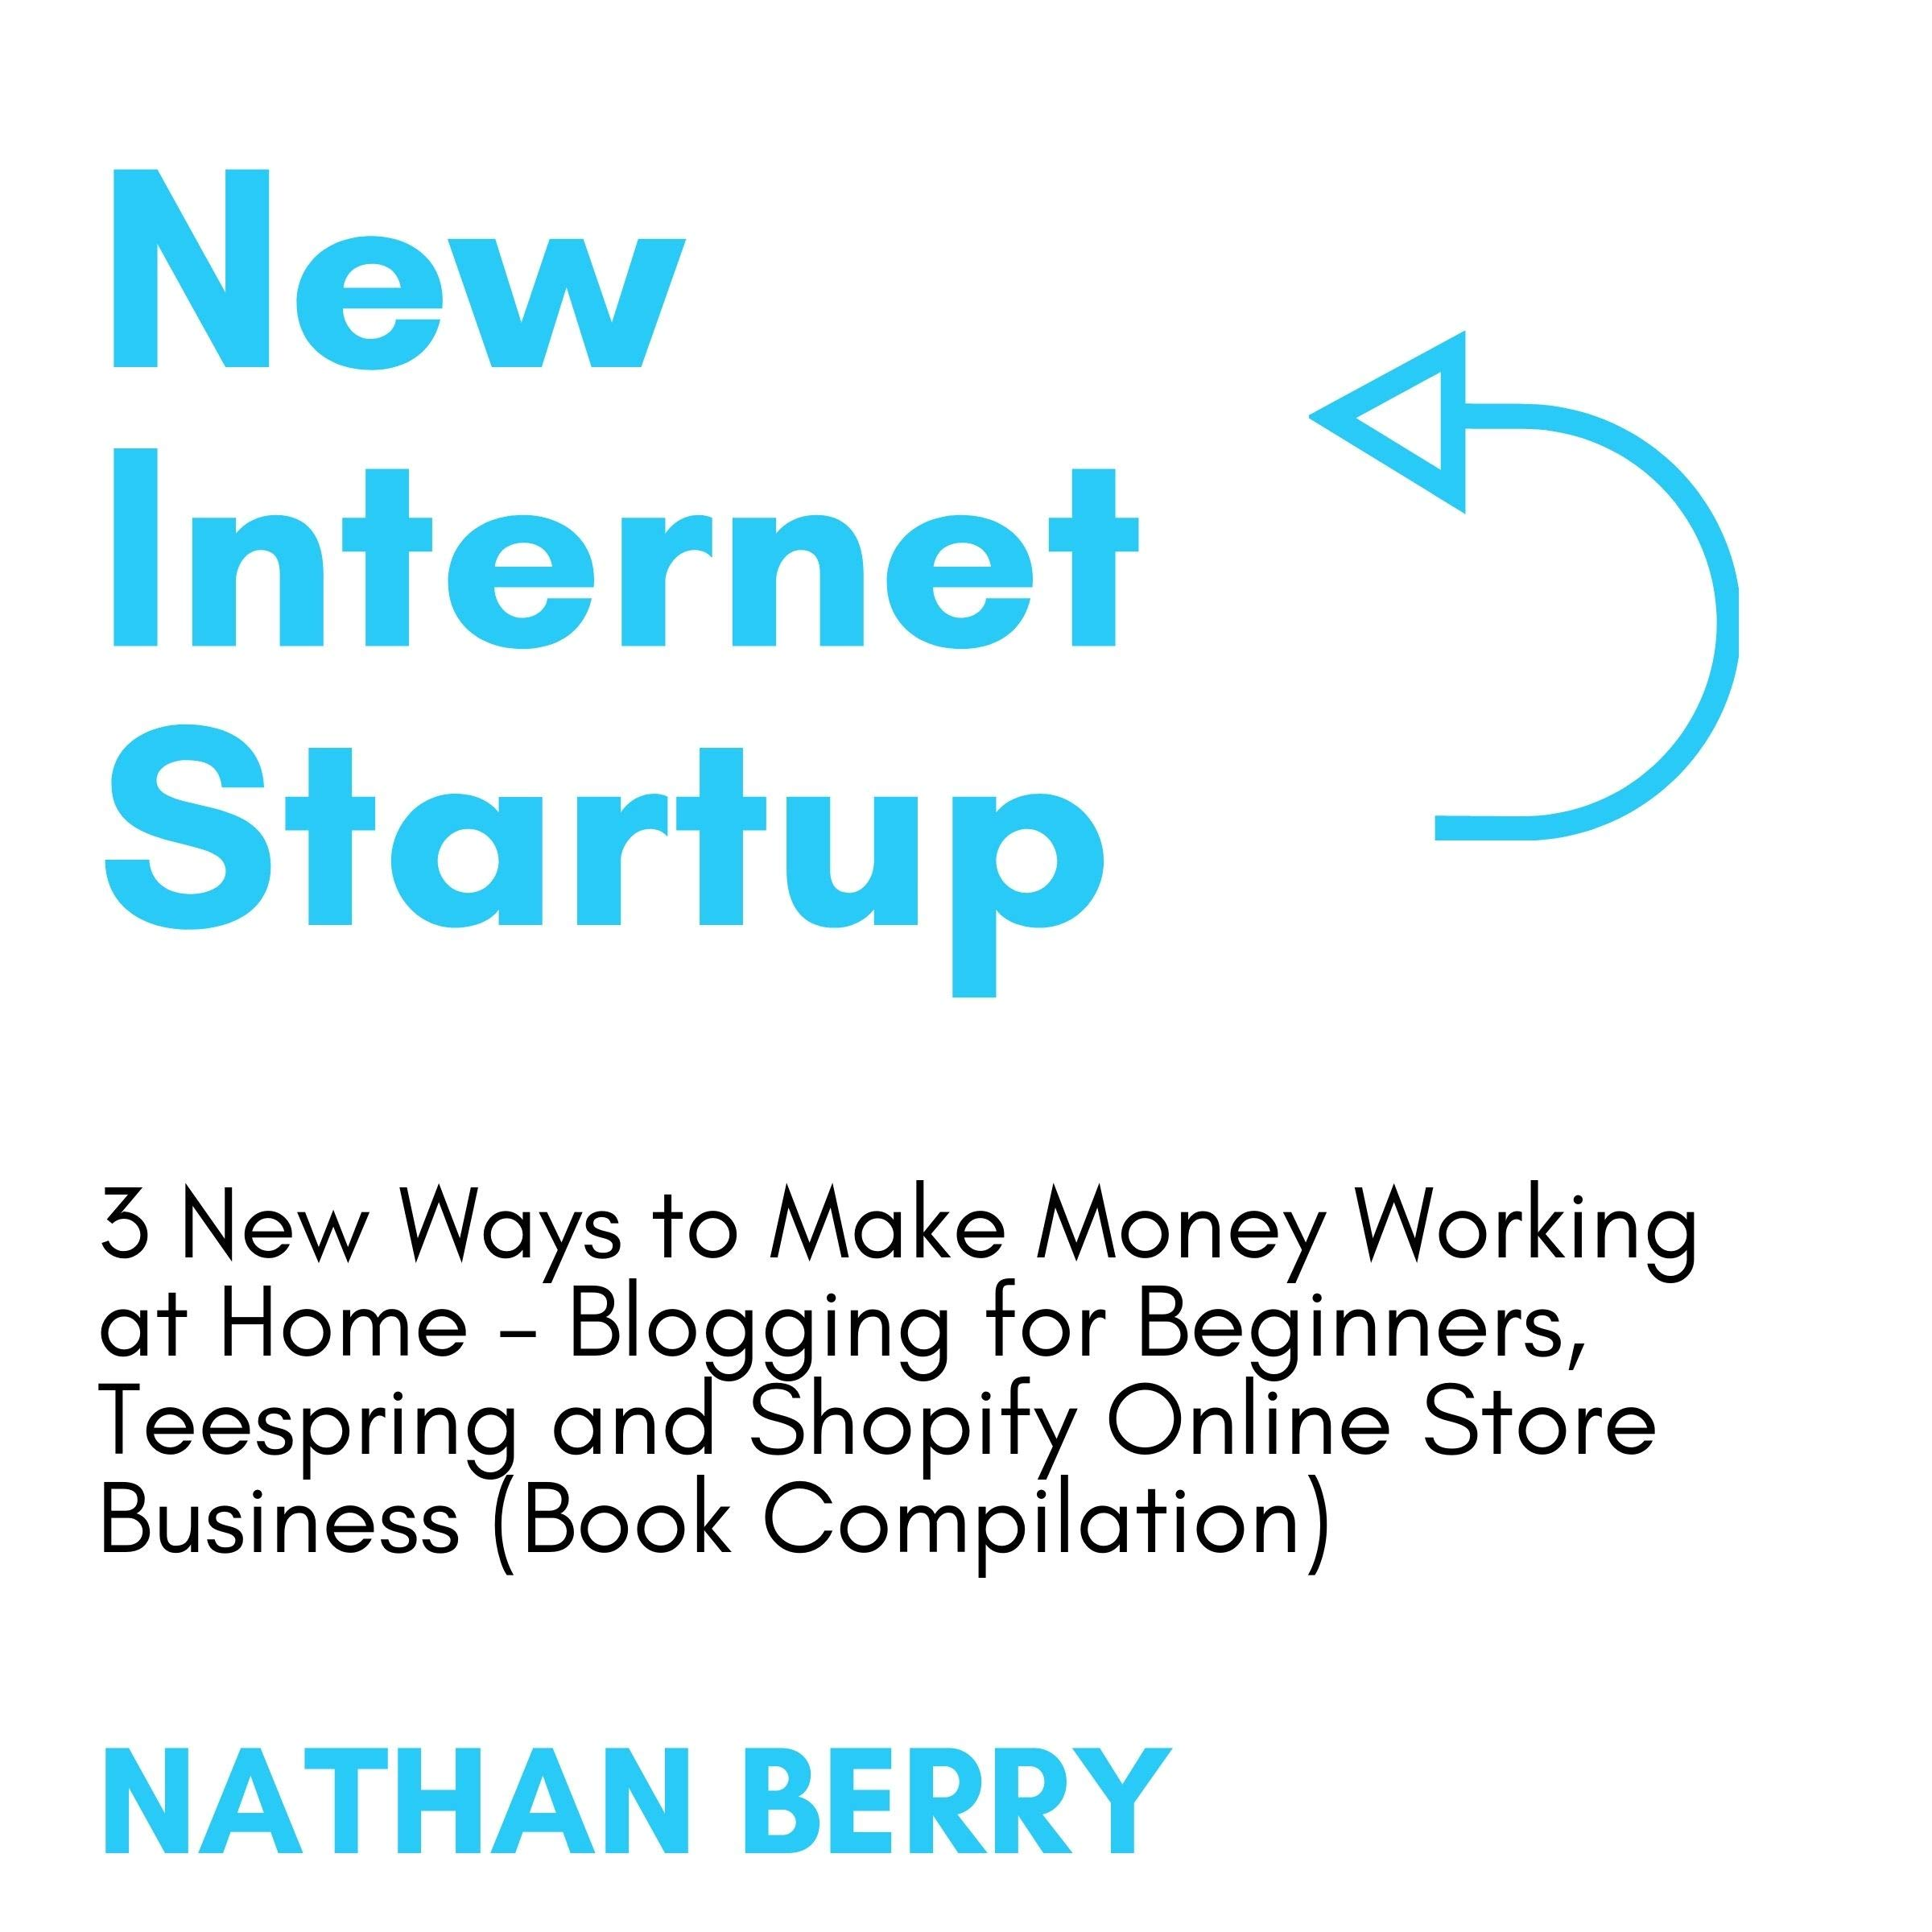 New Internet Startup: 3 New Ways to Make Money Working at Home – Blogging for Beginners, Teespring and Shopify Online Store Business (Book Compilation)